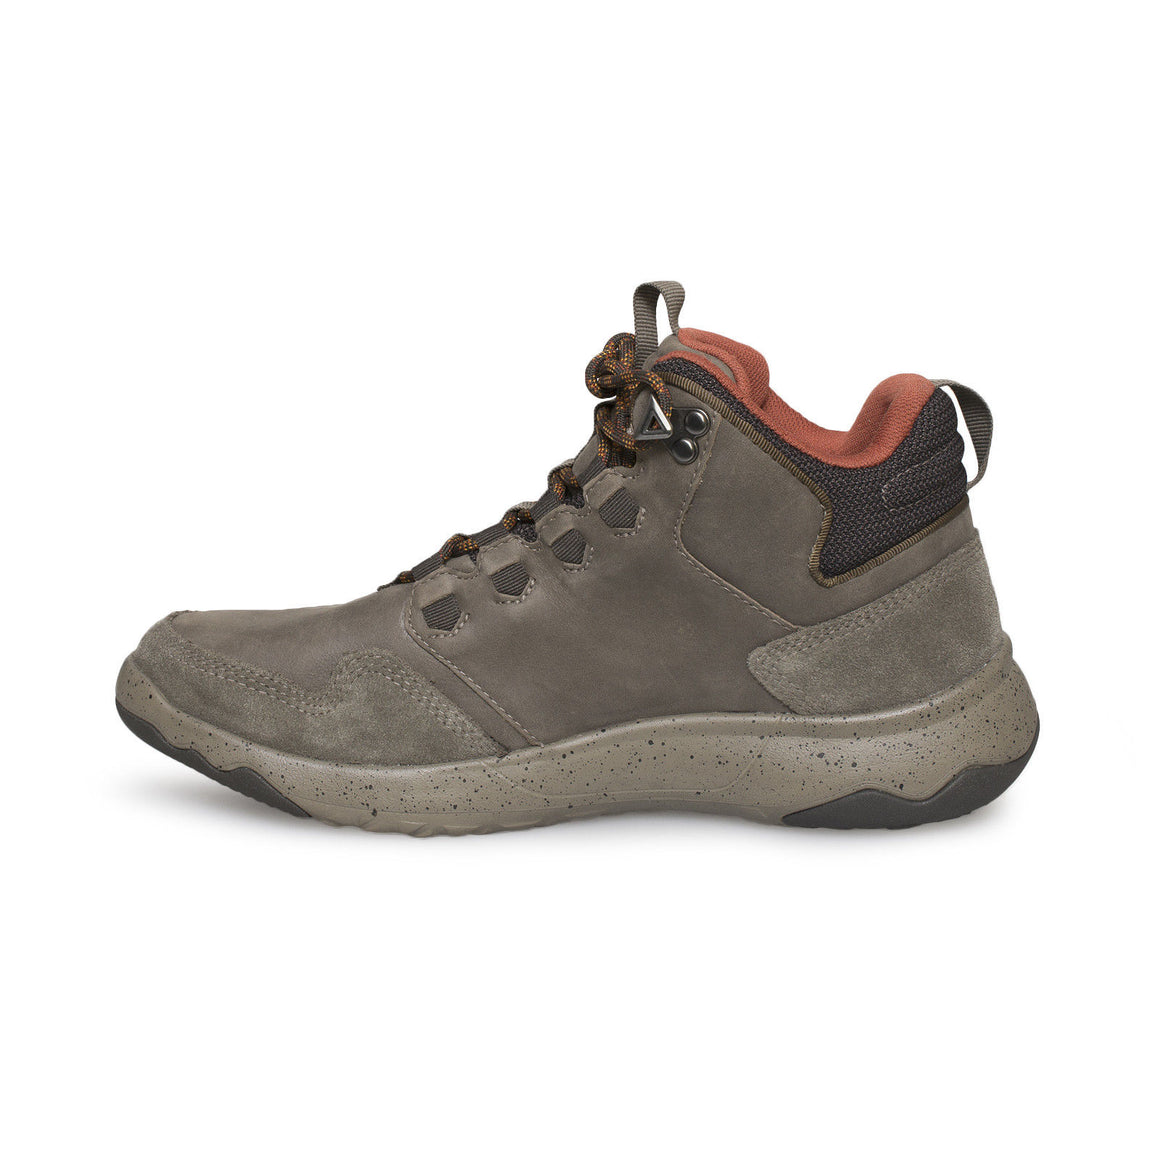 Teva Arrowood Lux Mid WP Bungee Cord Boots